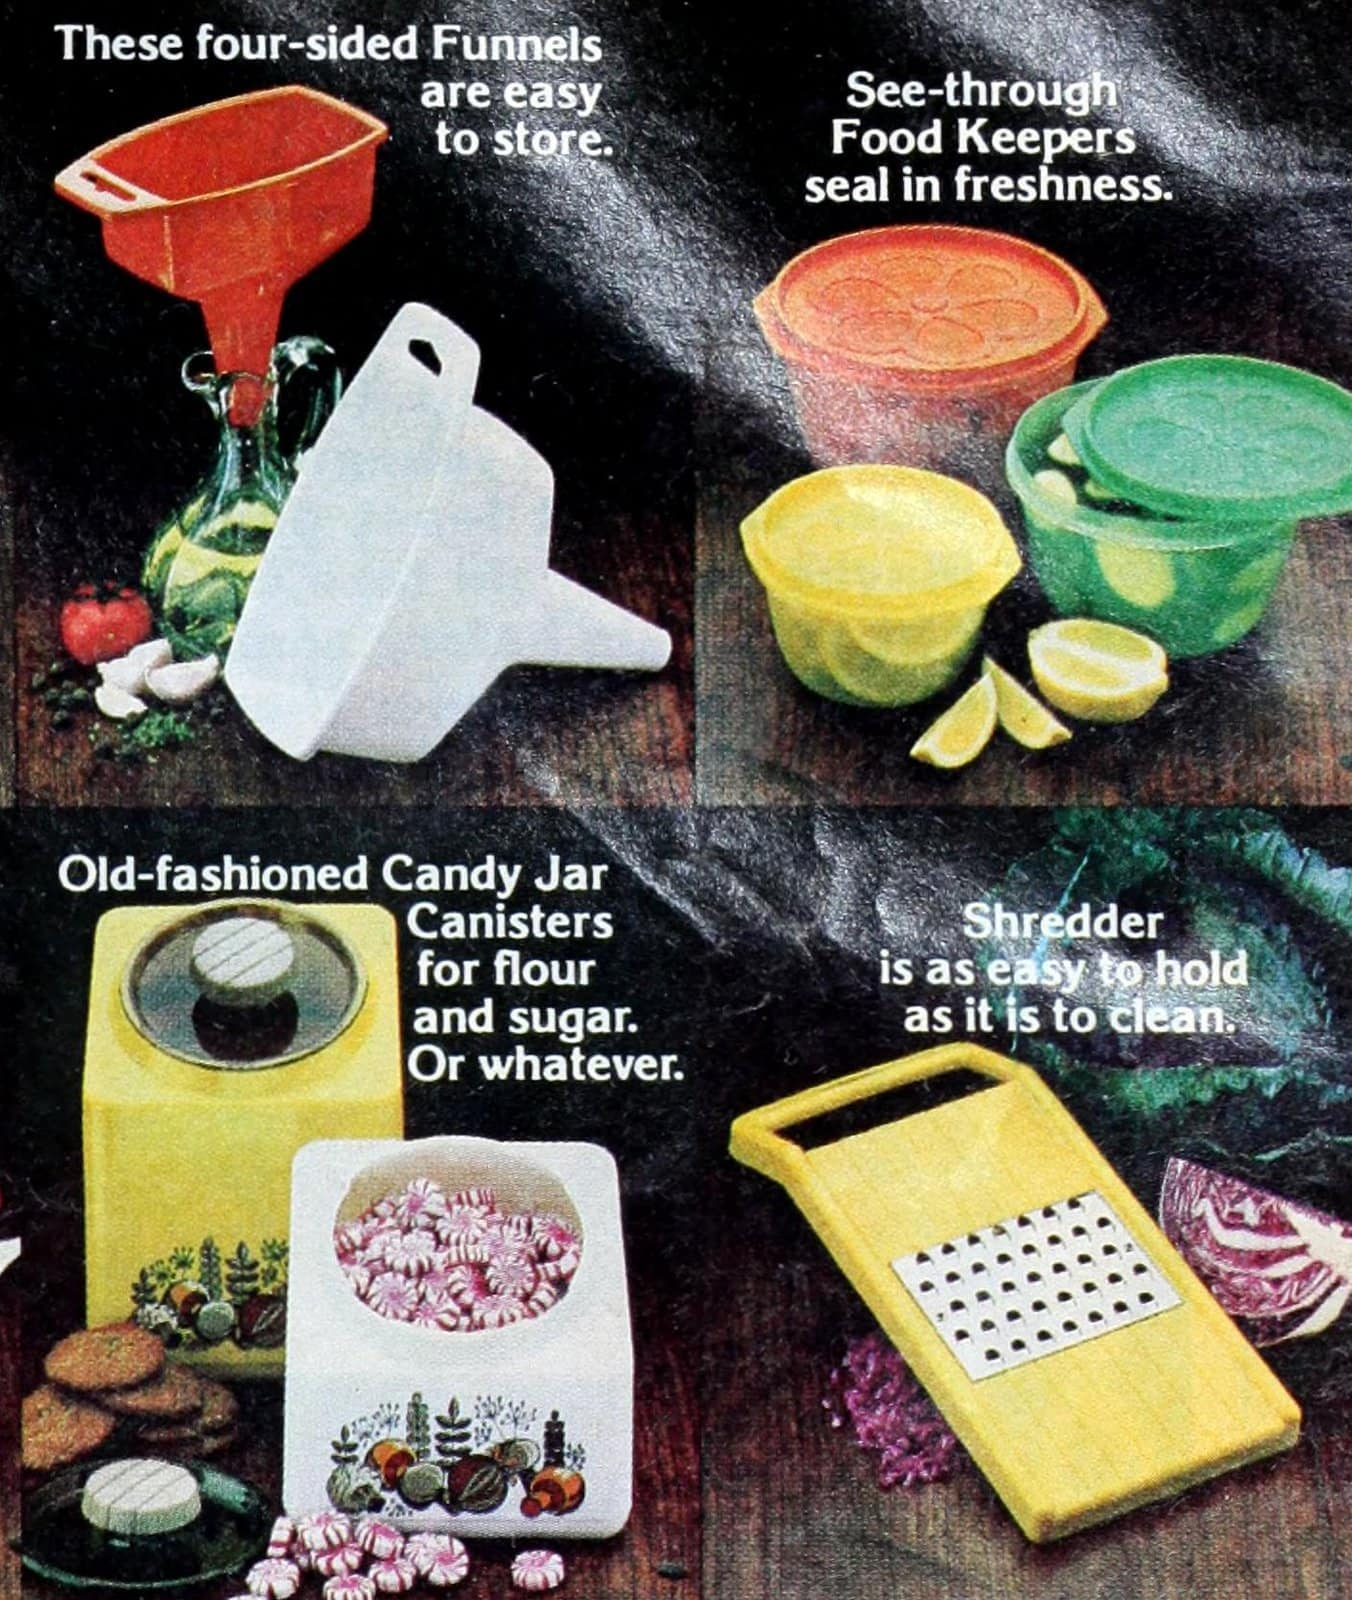 Retro Rubbermaid food storage and utensils from 1980 (3)